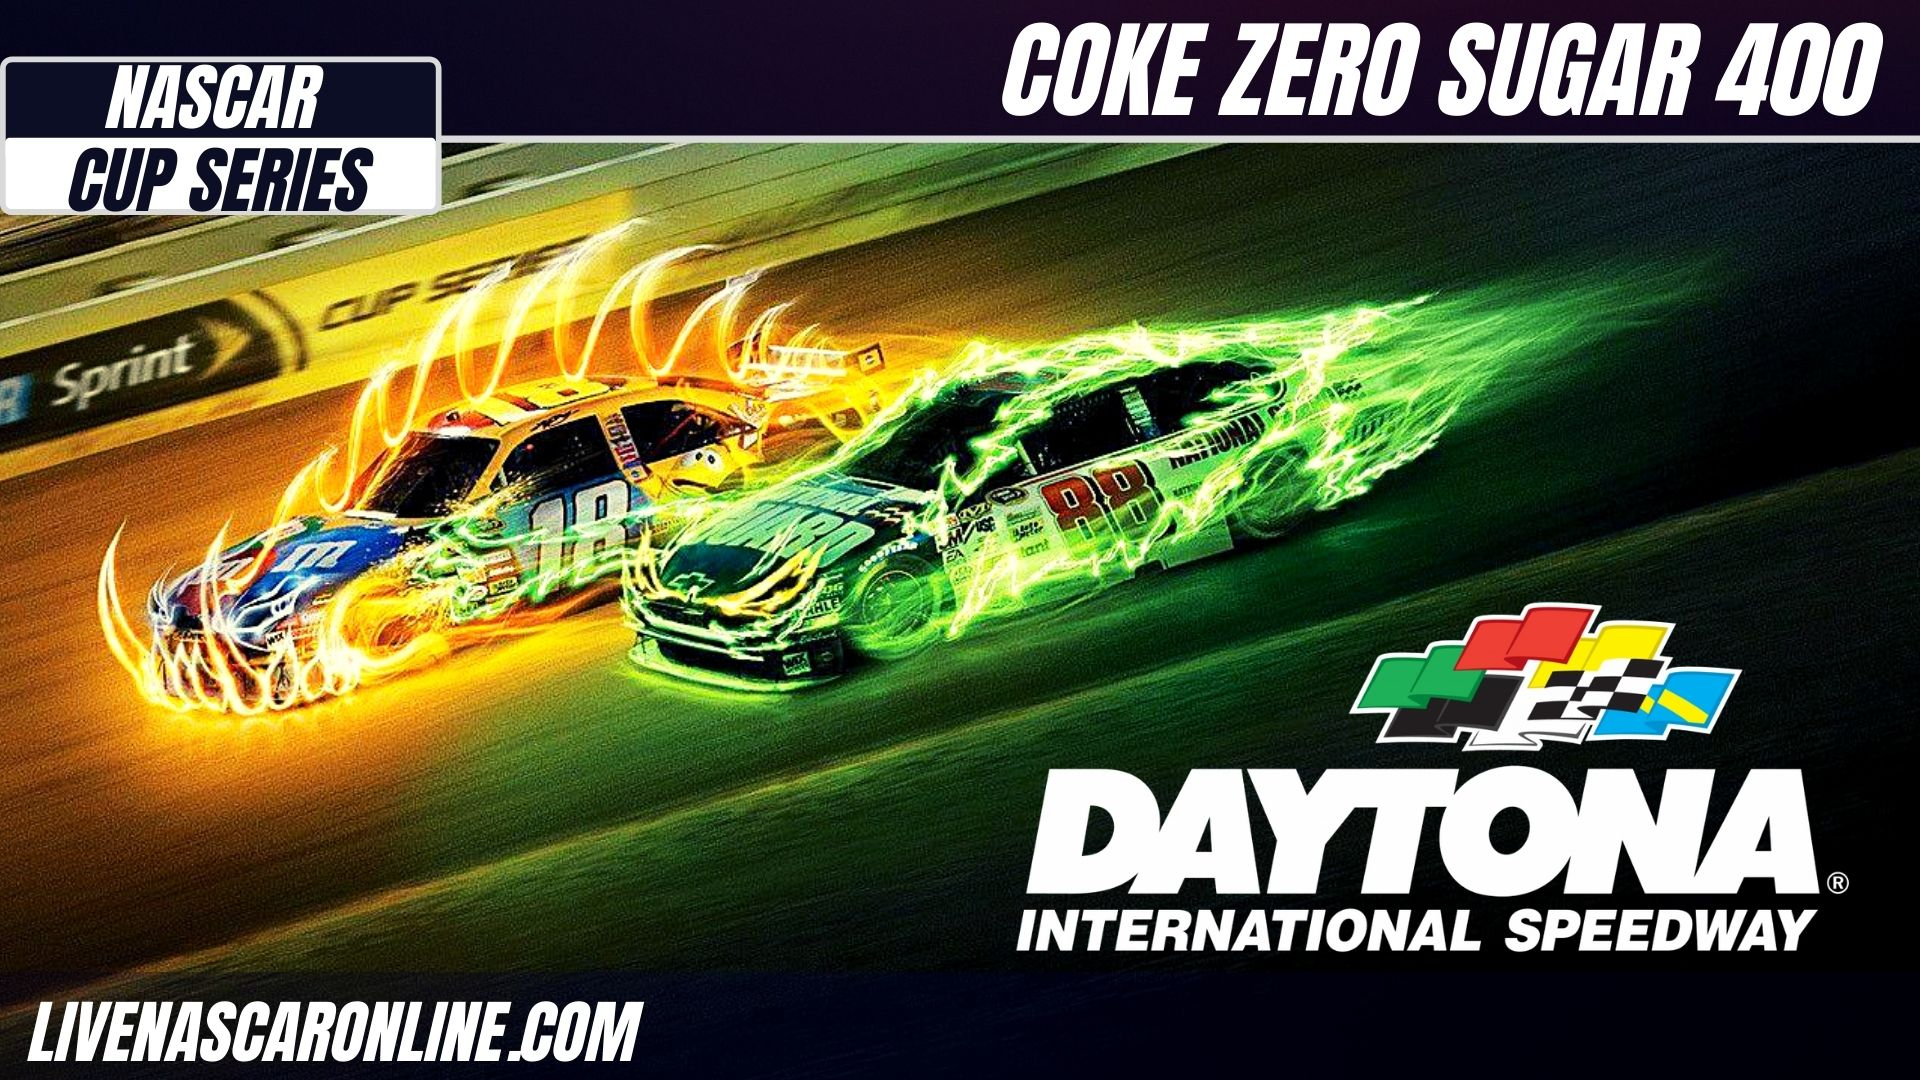 Coke Zero Sugar 400 Live Stream 2021